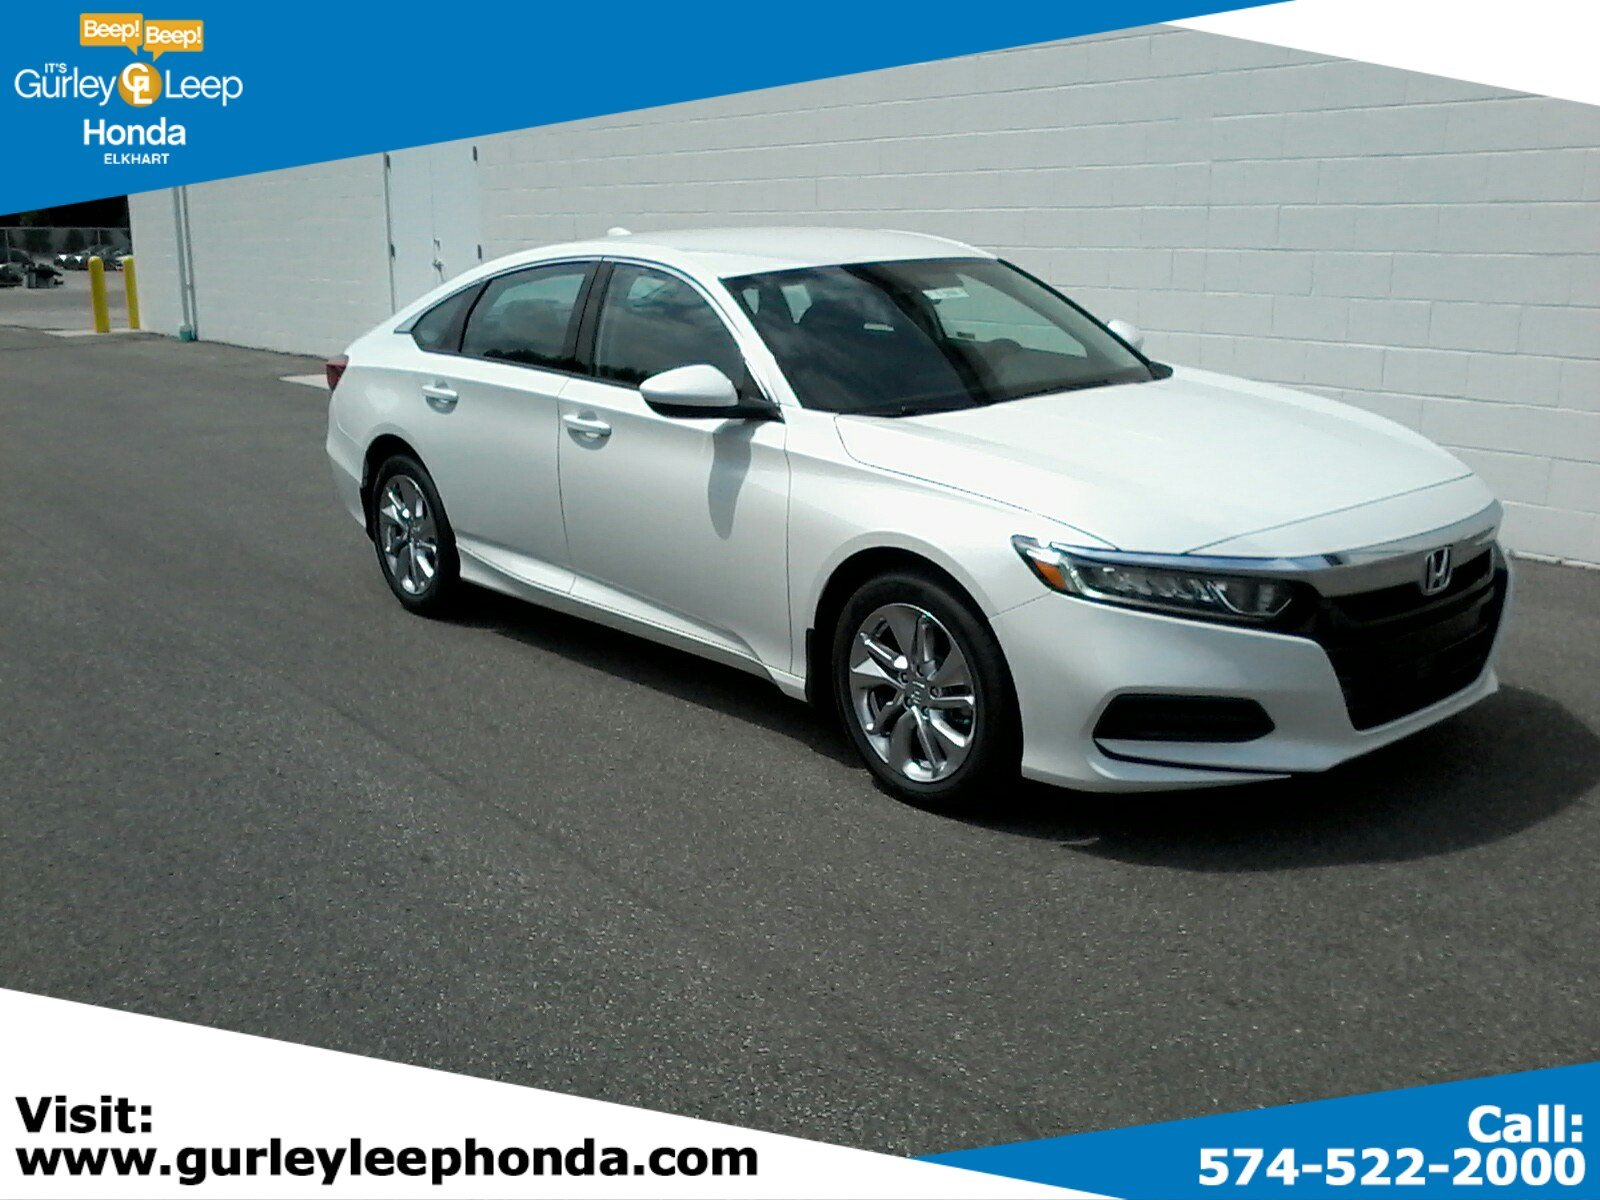 New 2019 Honda Accord LX 1.5T FWD